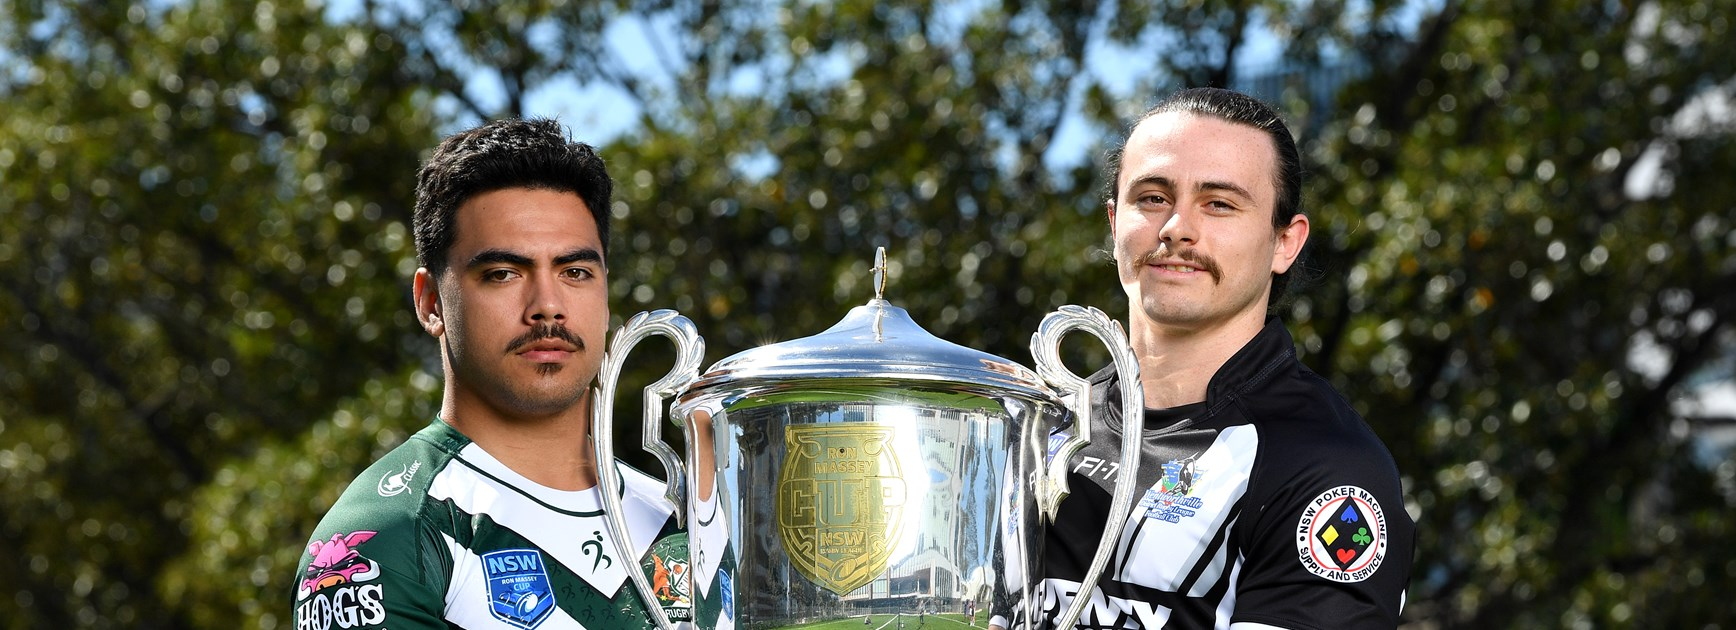 Preview | Ron Massey Cup Grand Final 2019